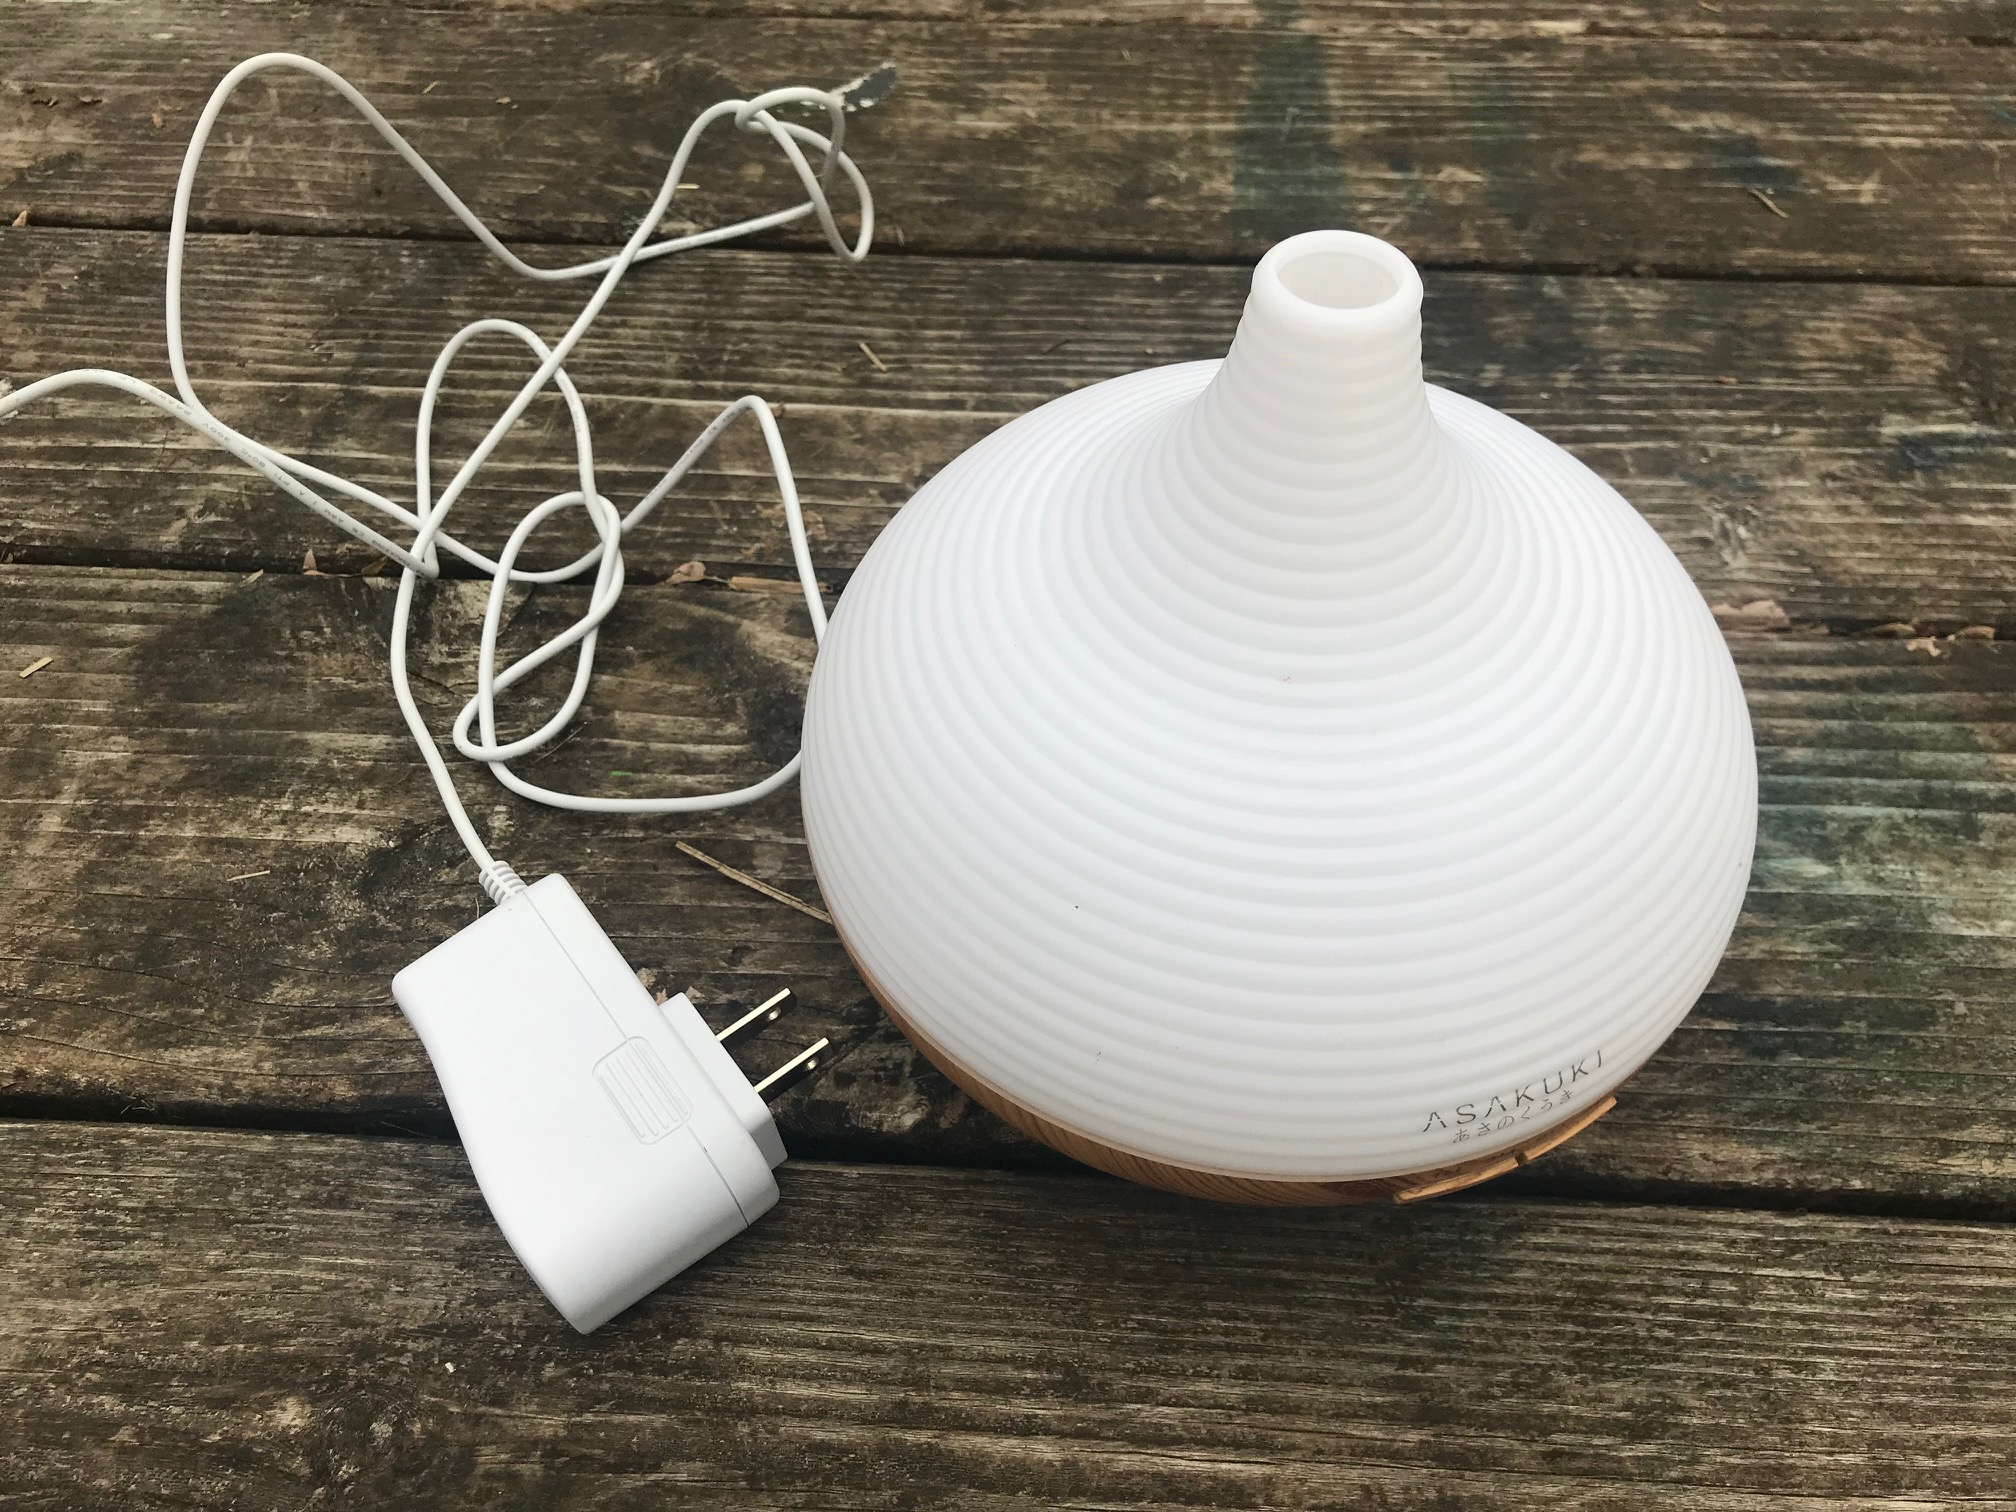 Asakuki White Plastic and Wood Design Essential Oil Diffuser:  9,398 ppm Lead in center of inside of unit.